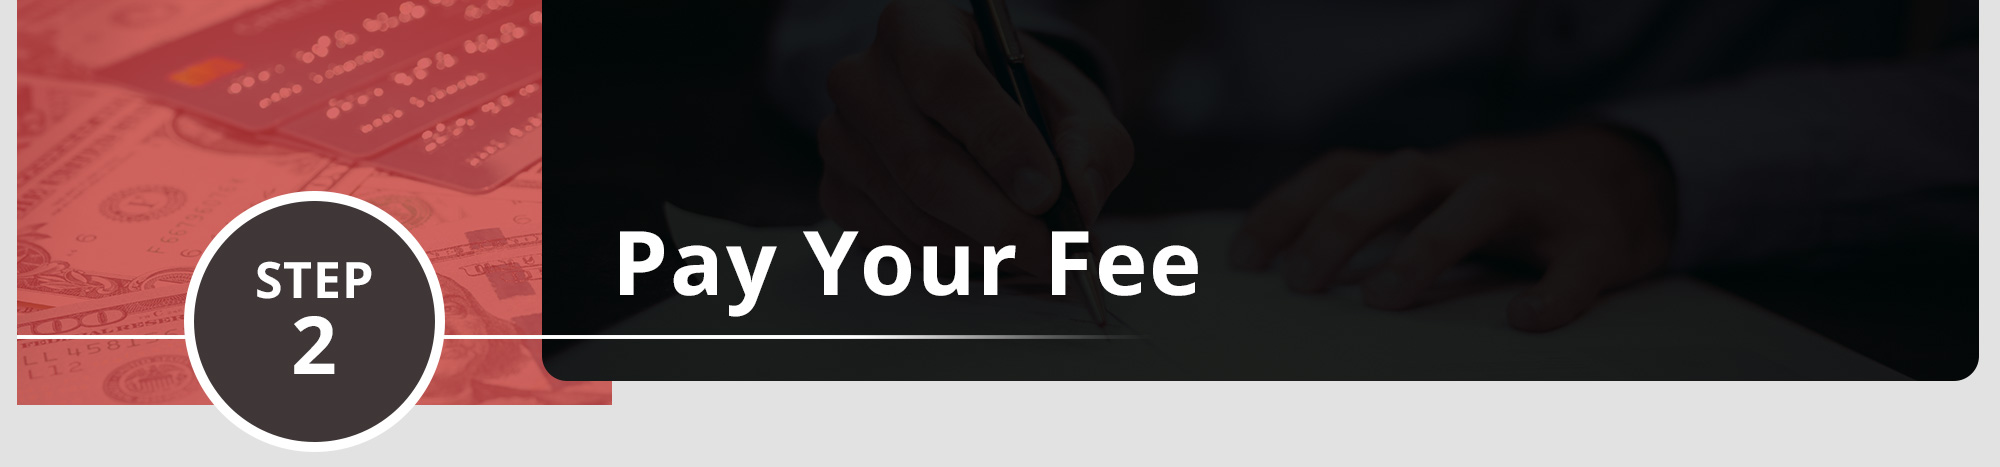 Pay Your Fee